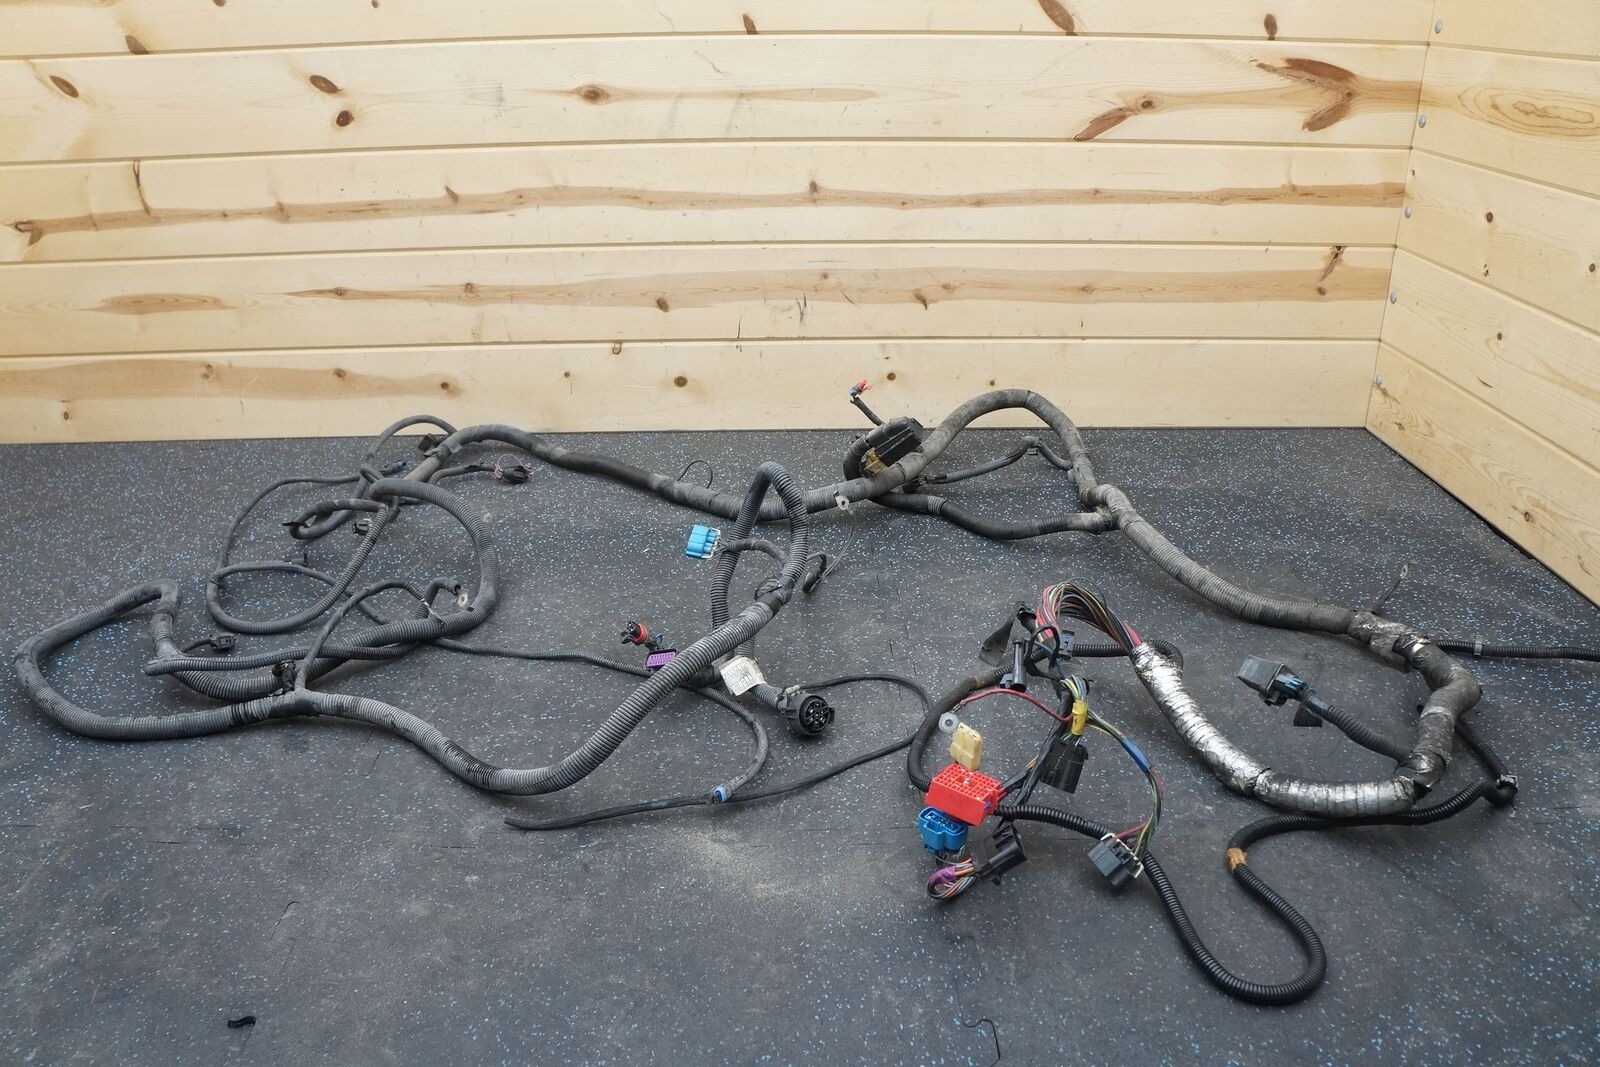 hummer \u2013 page 10 \u2013 pacific motorselectrical body chassis frame wire wiring harness 15186944 hummer h2 2003